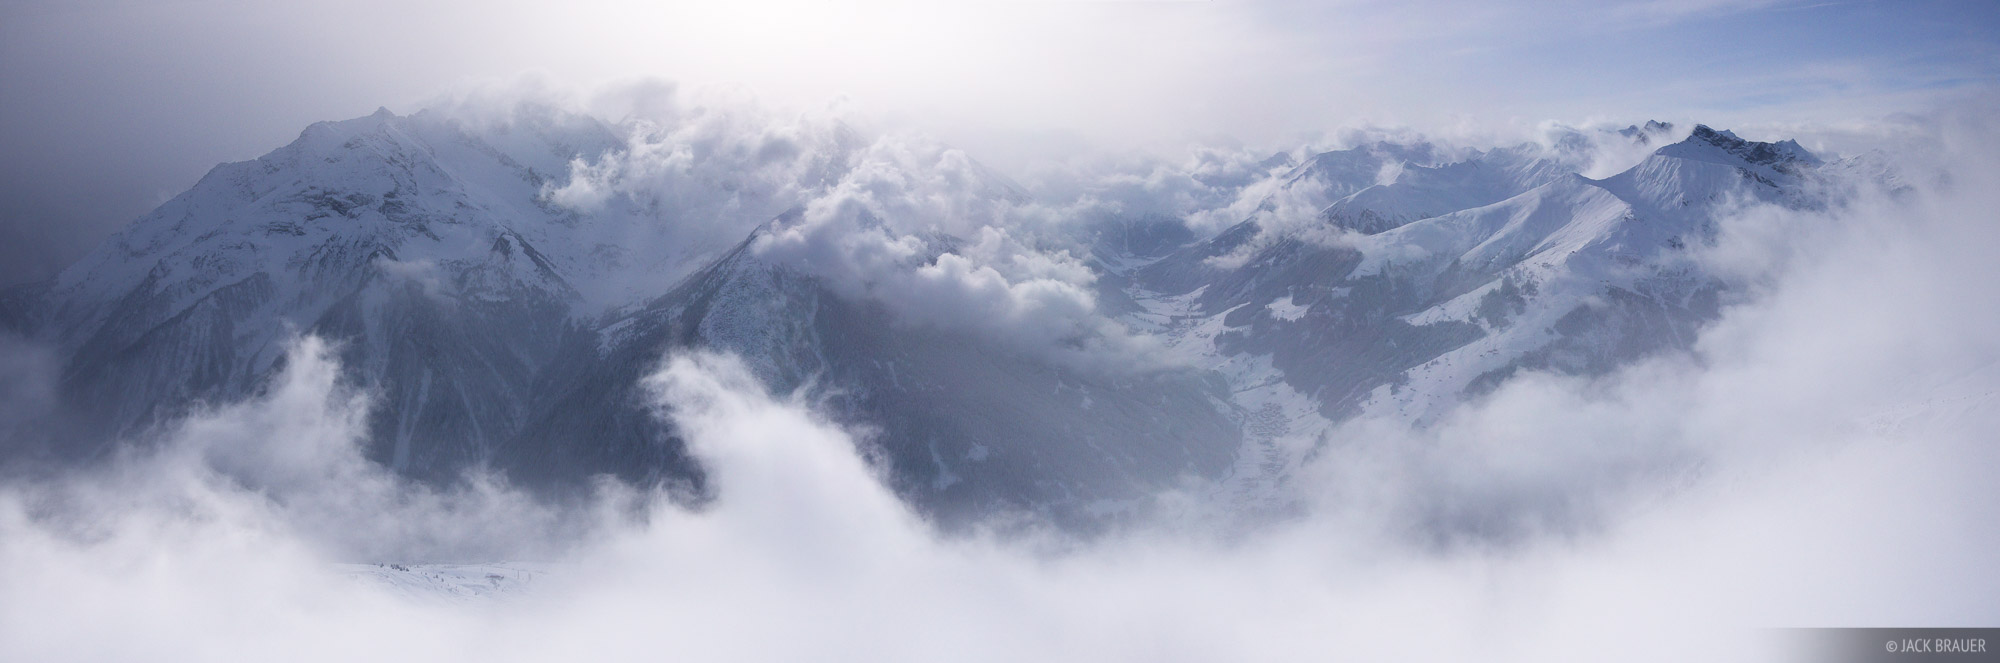 Mayrhofen, Austria, panorama, clouds, Zillertal, photo